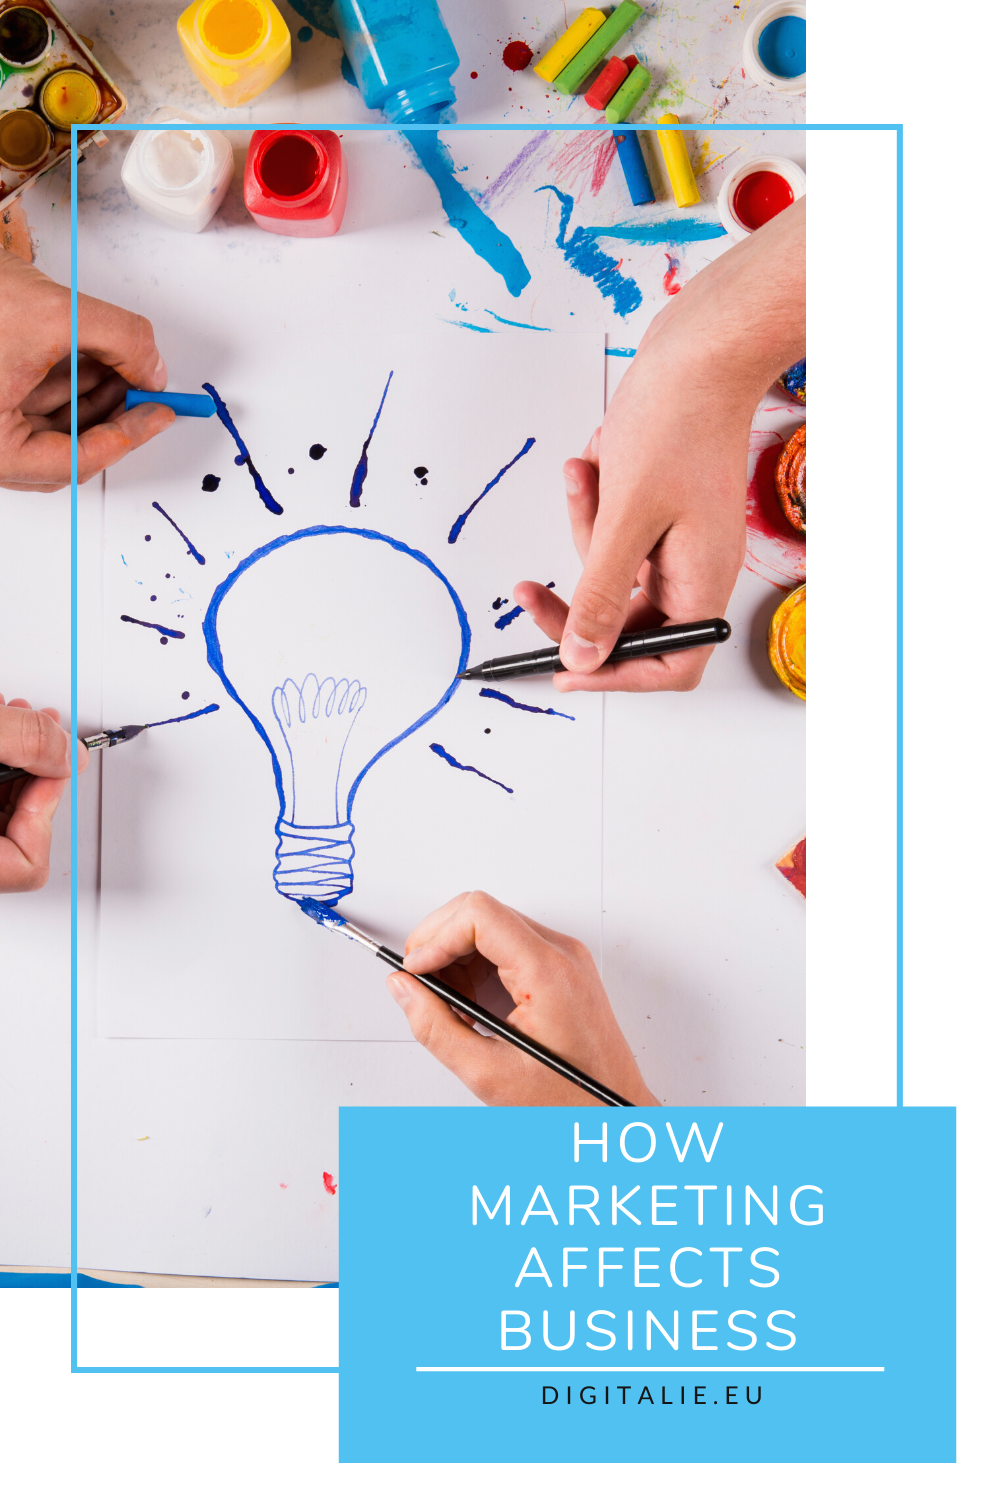 Marketing is like Paint by Numbers. Your business gives you the lines and numbers but it is up to you to use your creativity and your personality to make it into your own work of art.   #creativemarketing #creativity #businessbuilding #digitalie